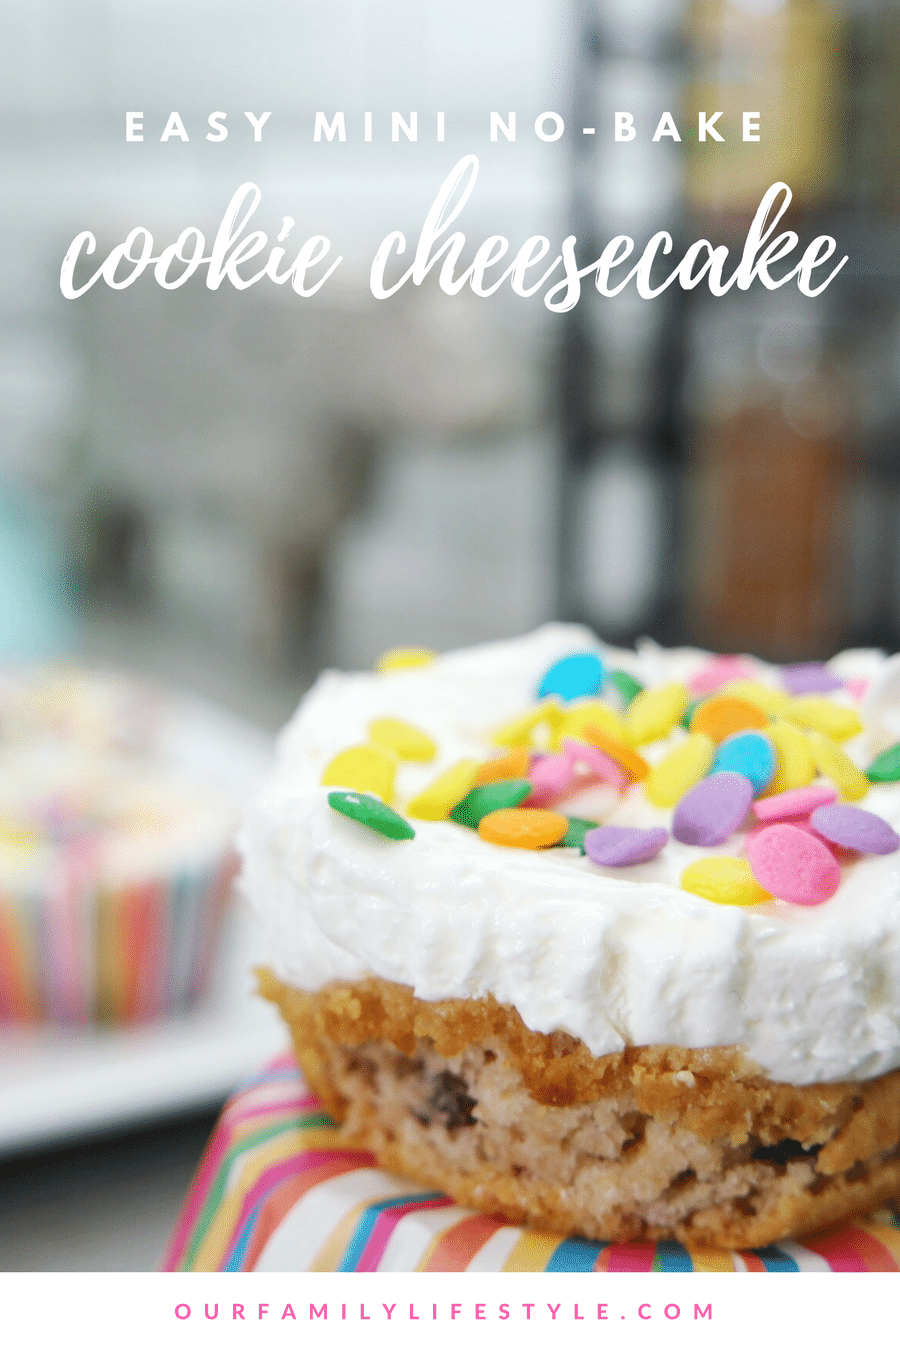 Mini No-Bake Cookie Cheesecake Recipe